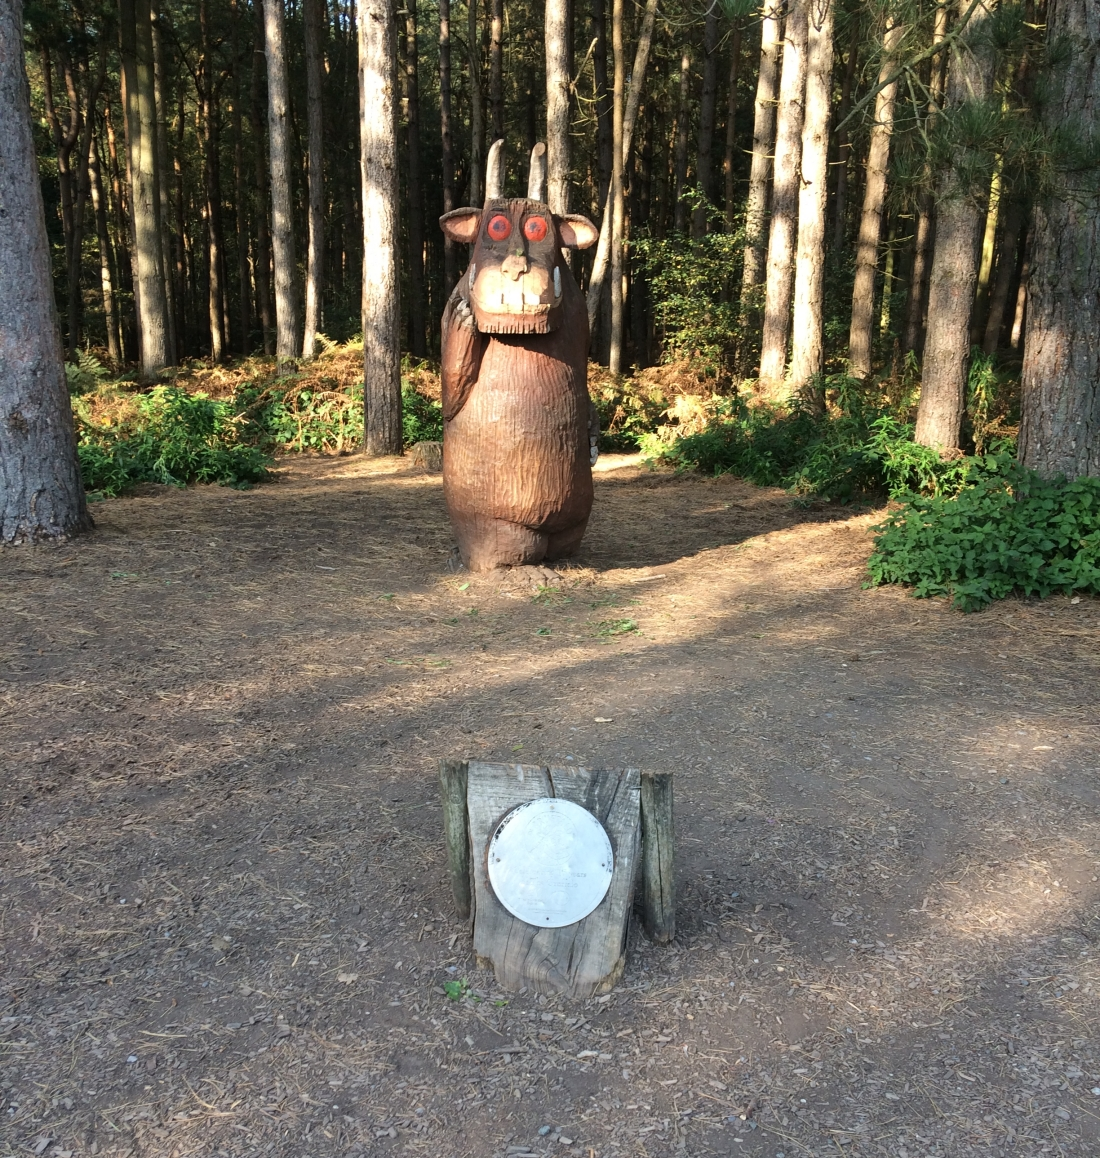 Gruffalo sculpture at the start of one of the walking trails